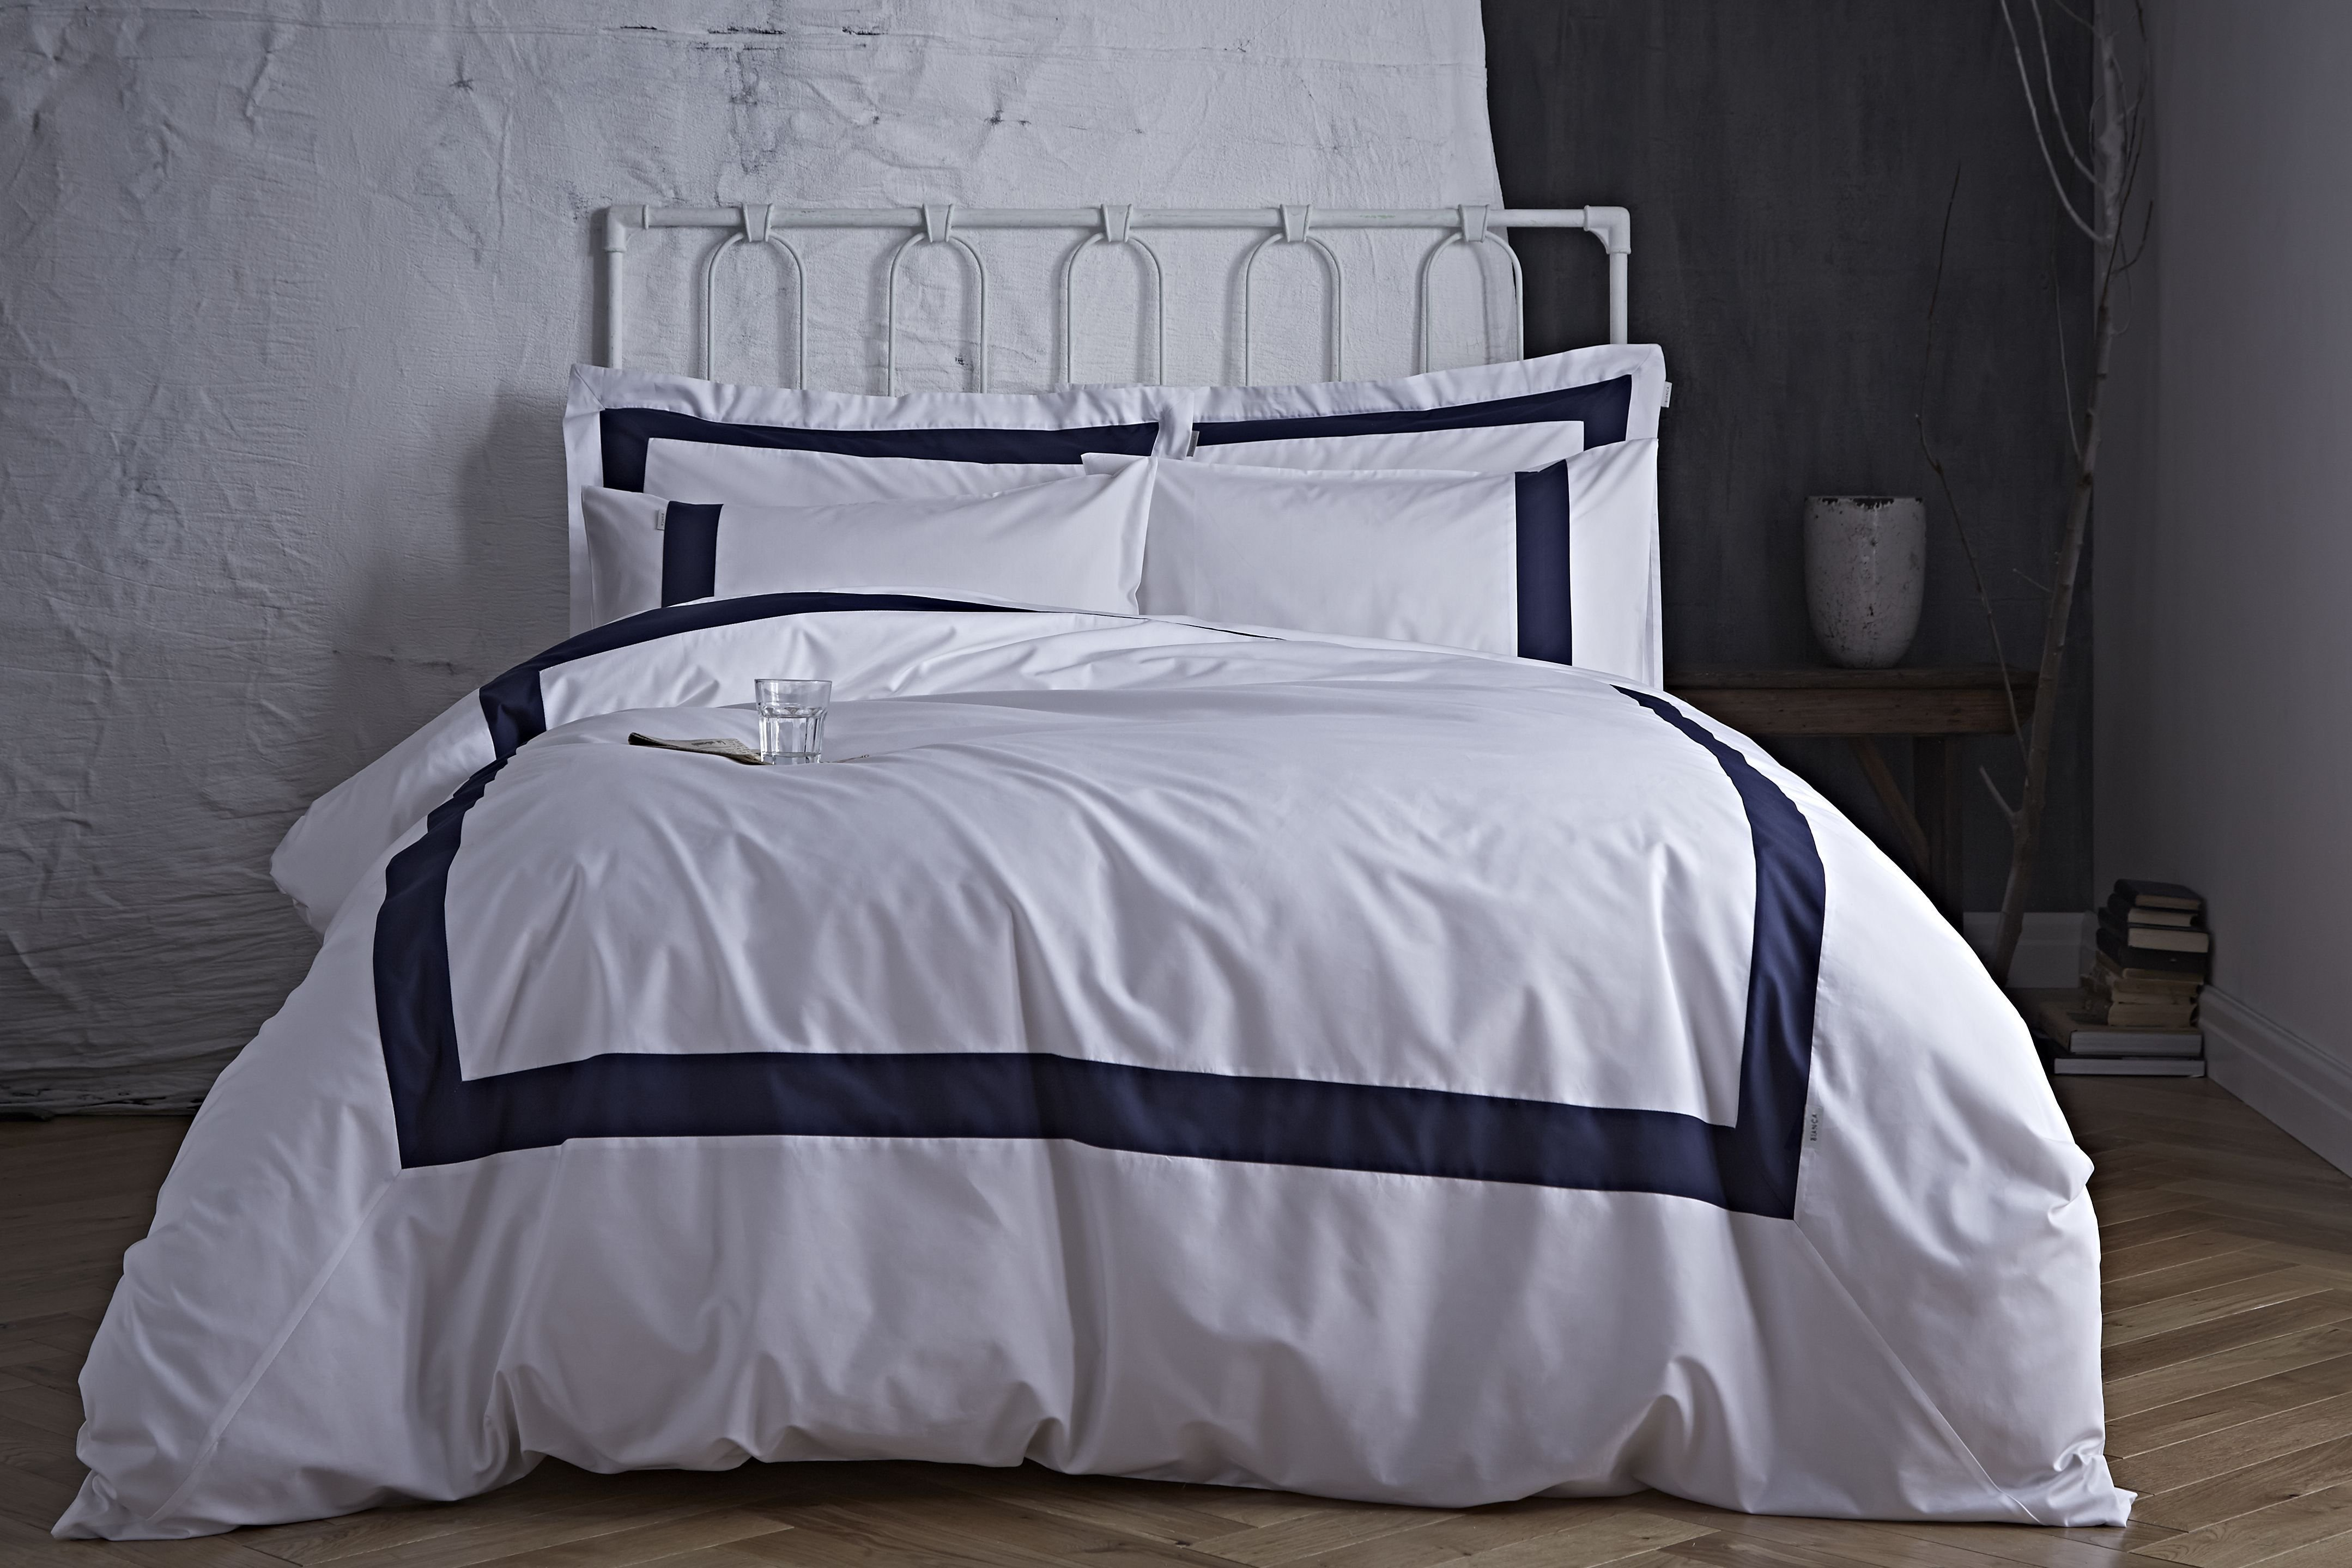 Image of Bianca Cotton - Soft Tailored Navy - Duvet Cover Set - Single